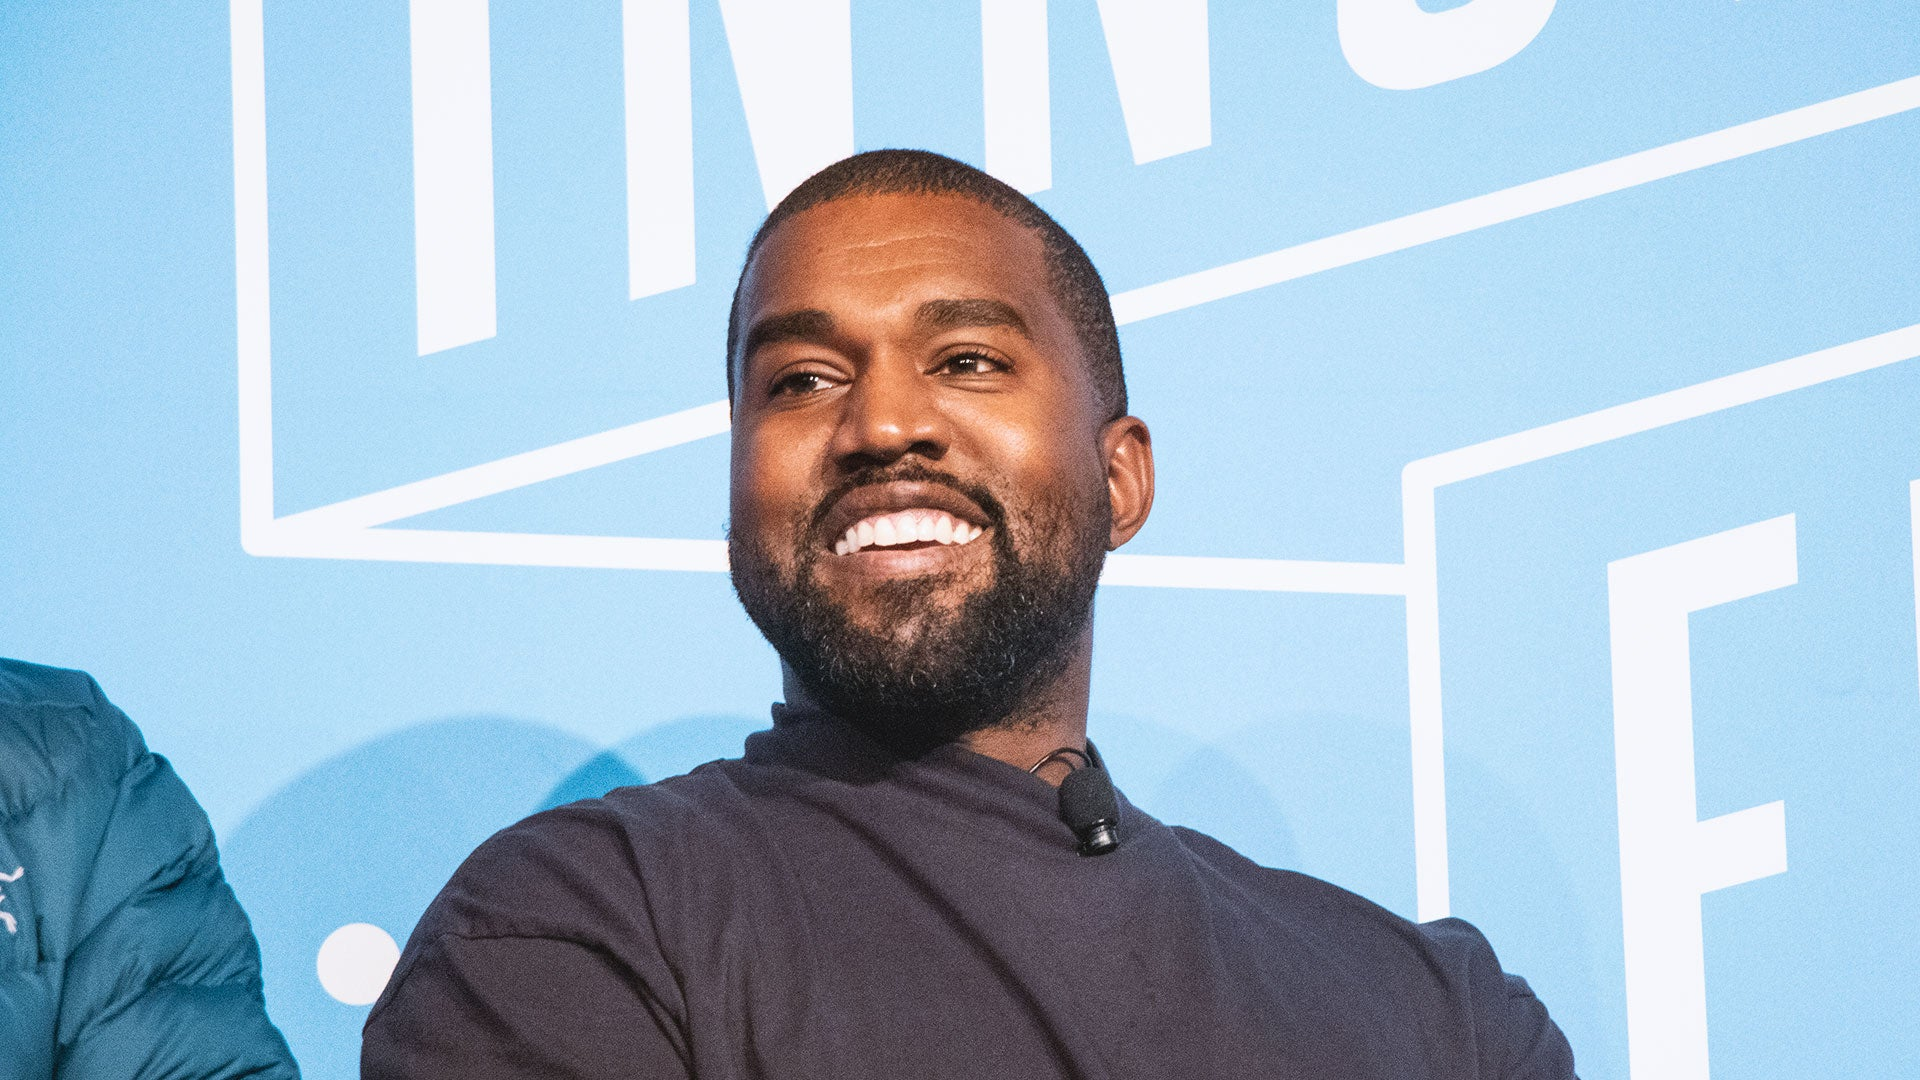 Forbes Says Kanye West Is Not The Richest Black Person In America